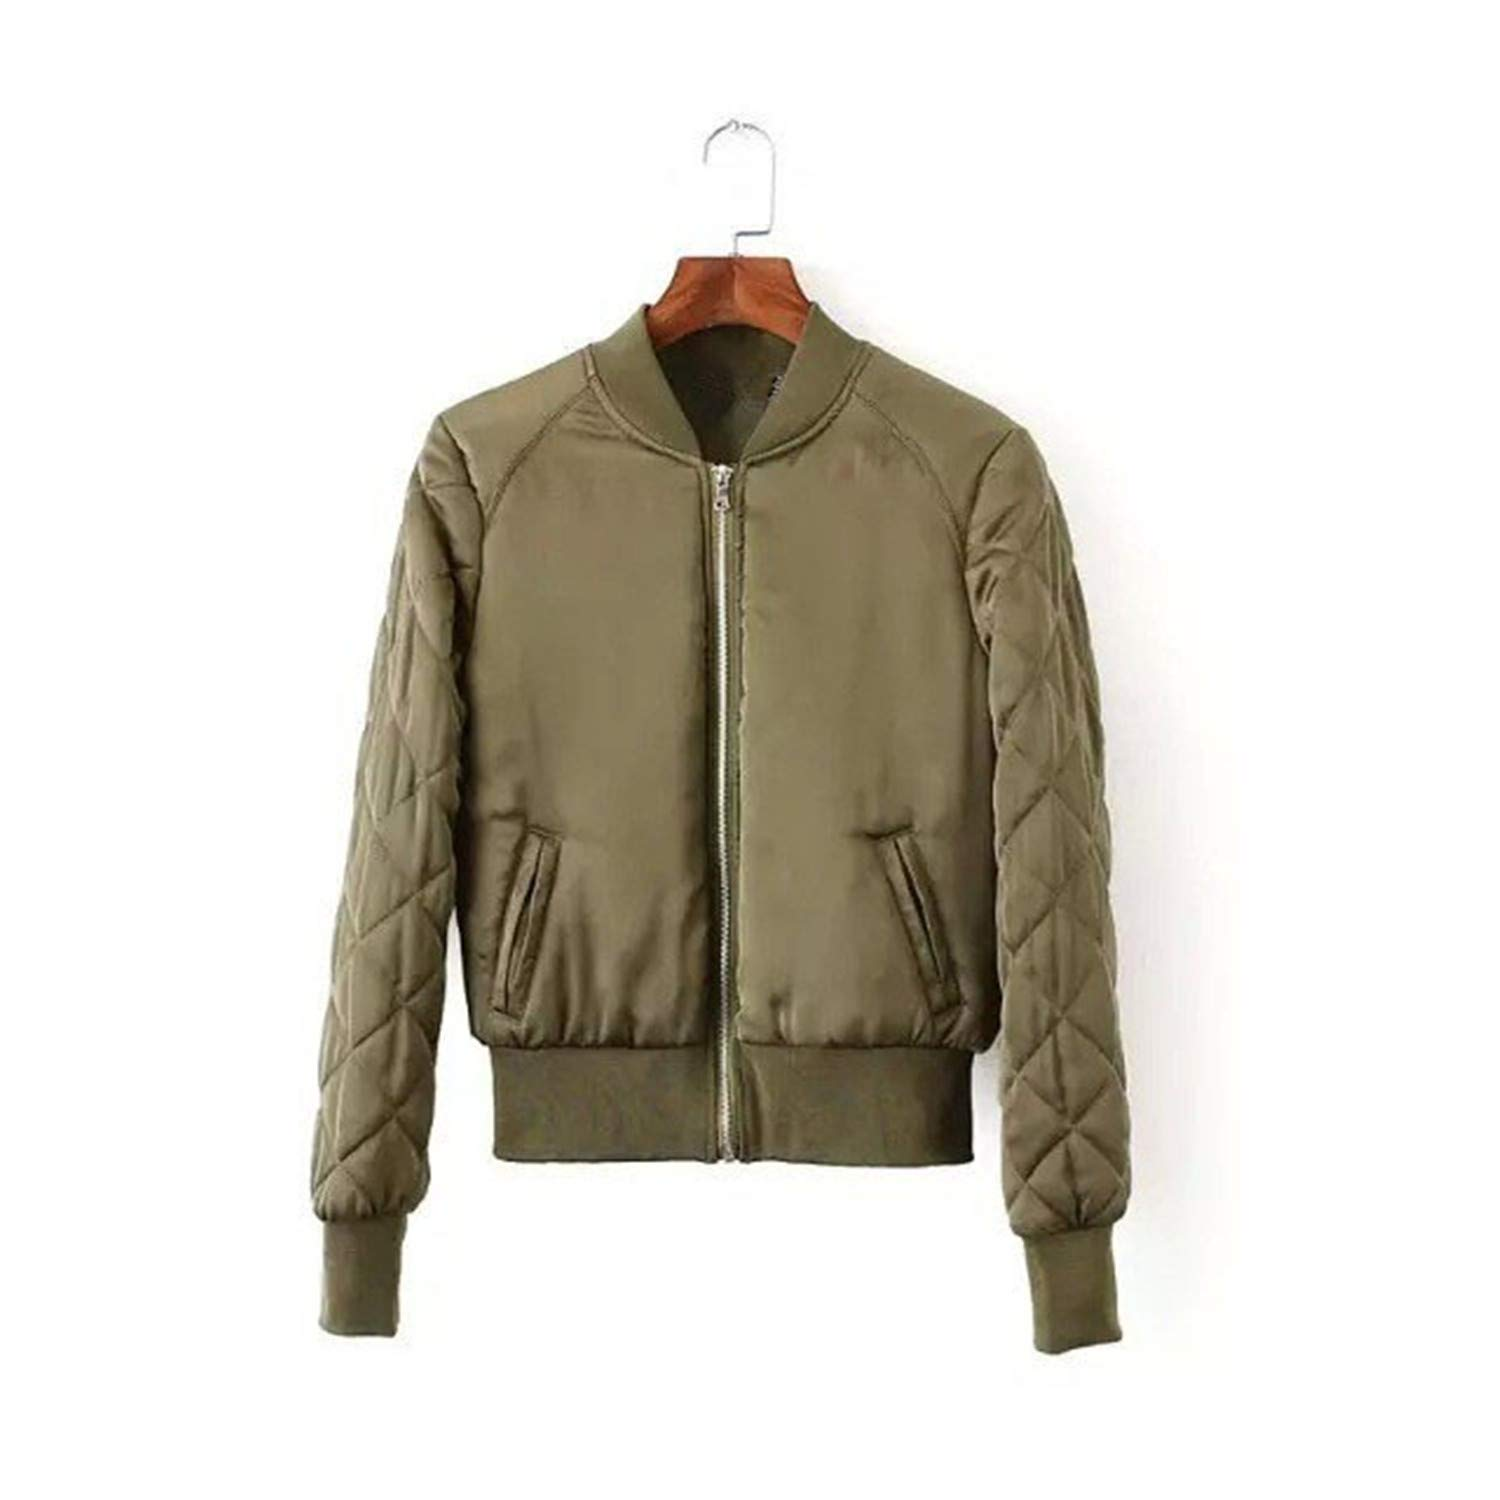 Amazon.com: Winter Bomber Jacket Women Aviator Jacket Army Green Baseball Jackets Chaquetas: Clothing